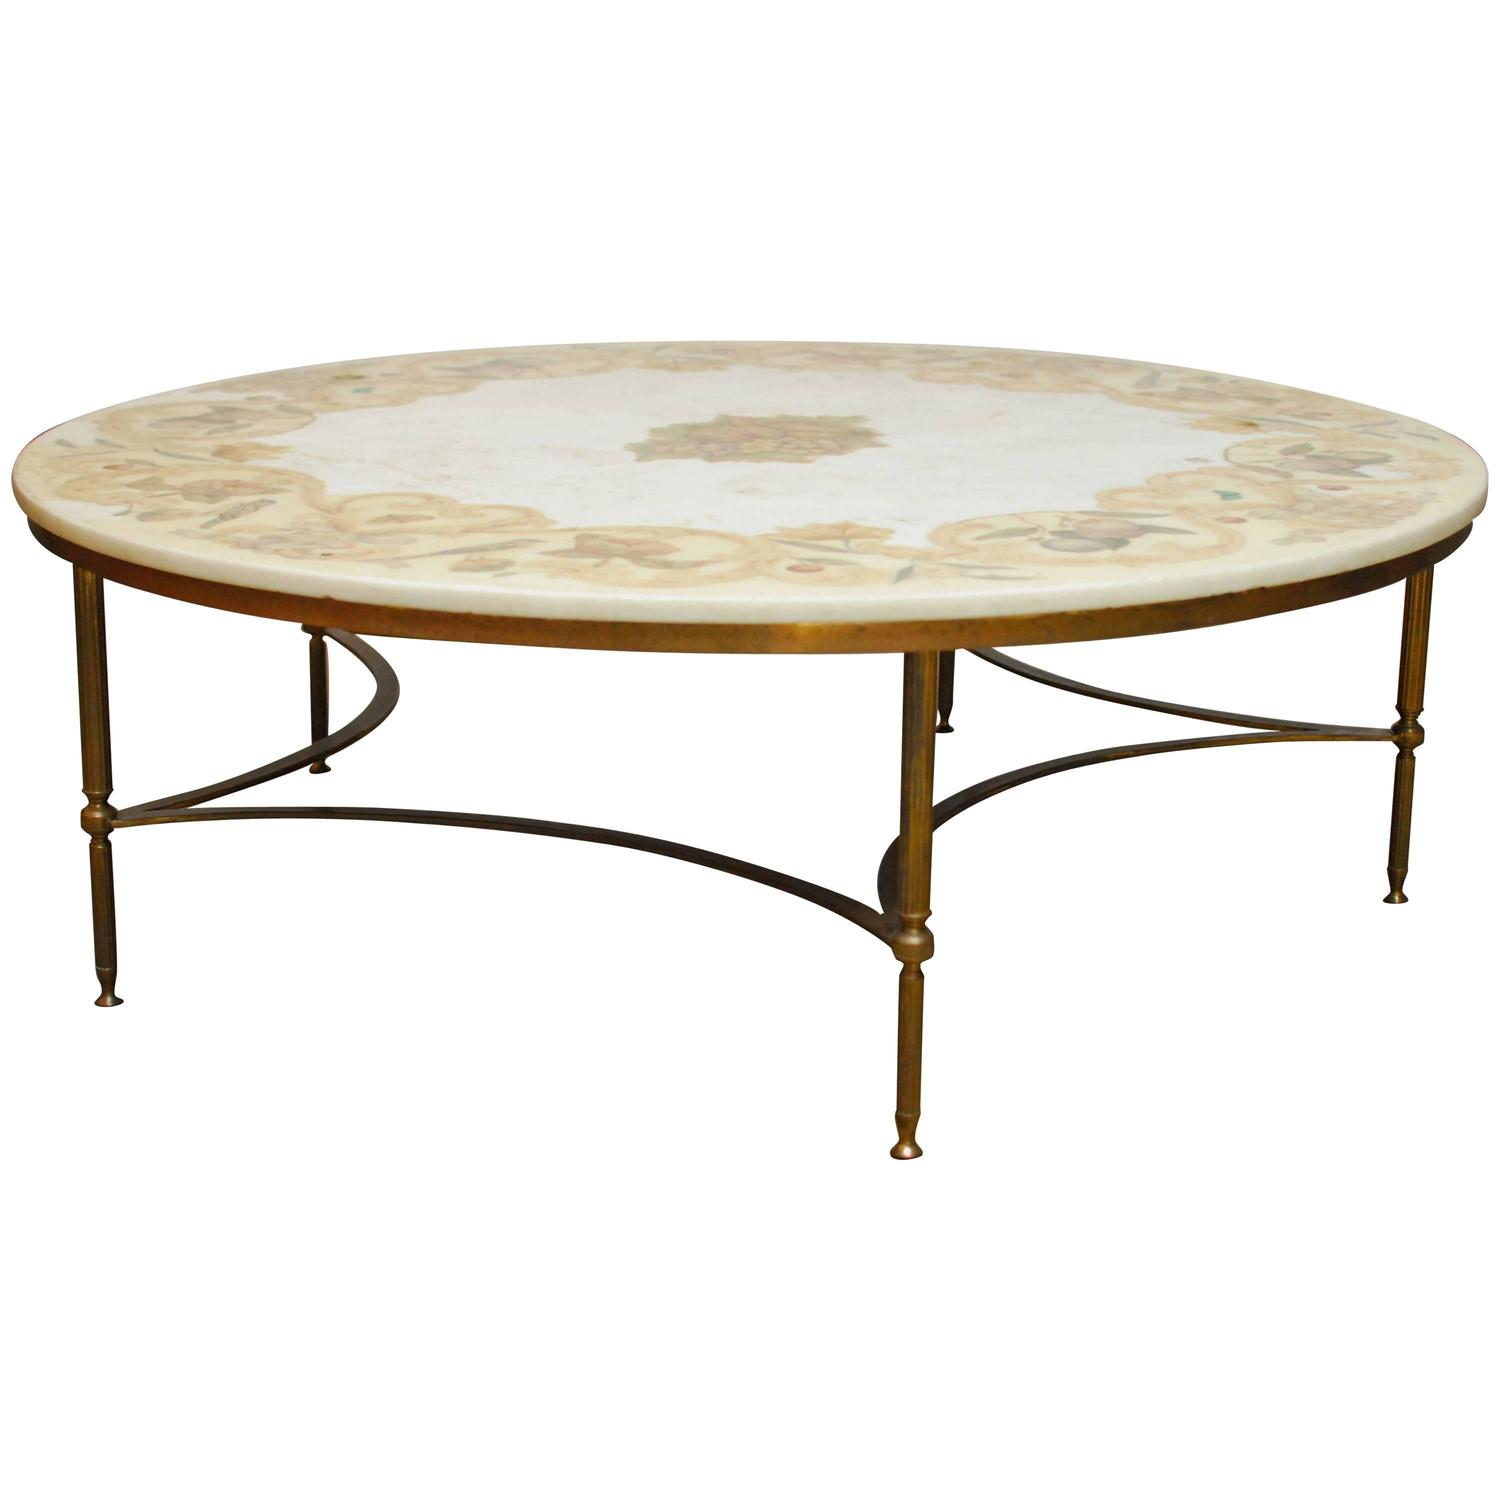 Florentine marble and brass round cocktail coffee table at 1stdibs Brass round coffee table